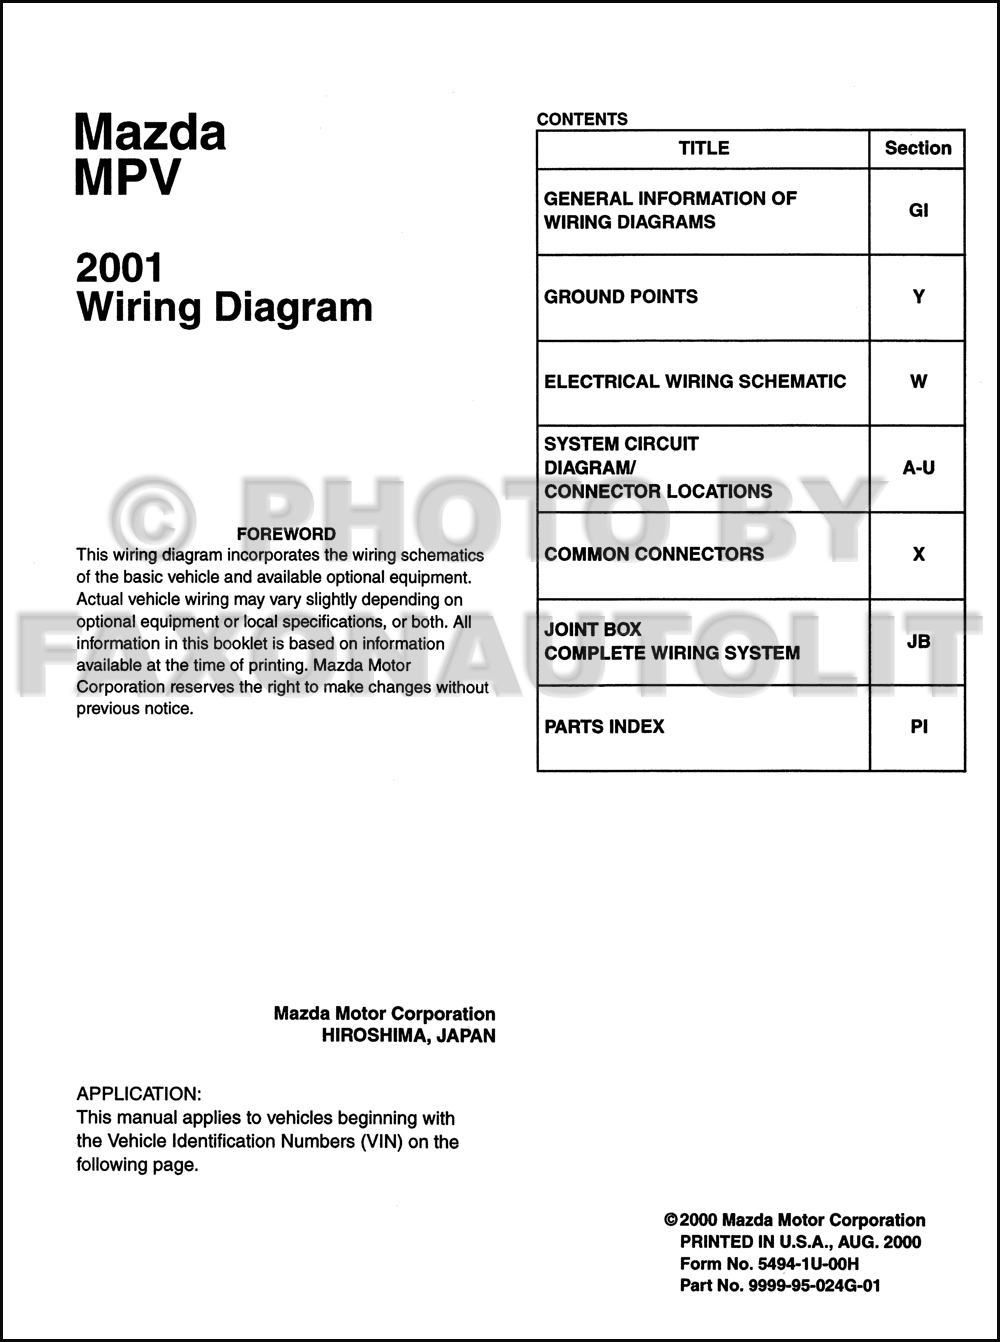 Mazda mpv wiring diagram manual original